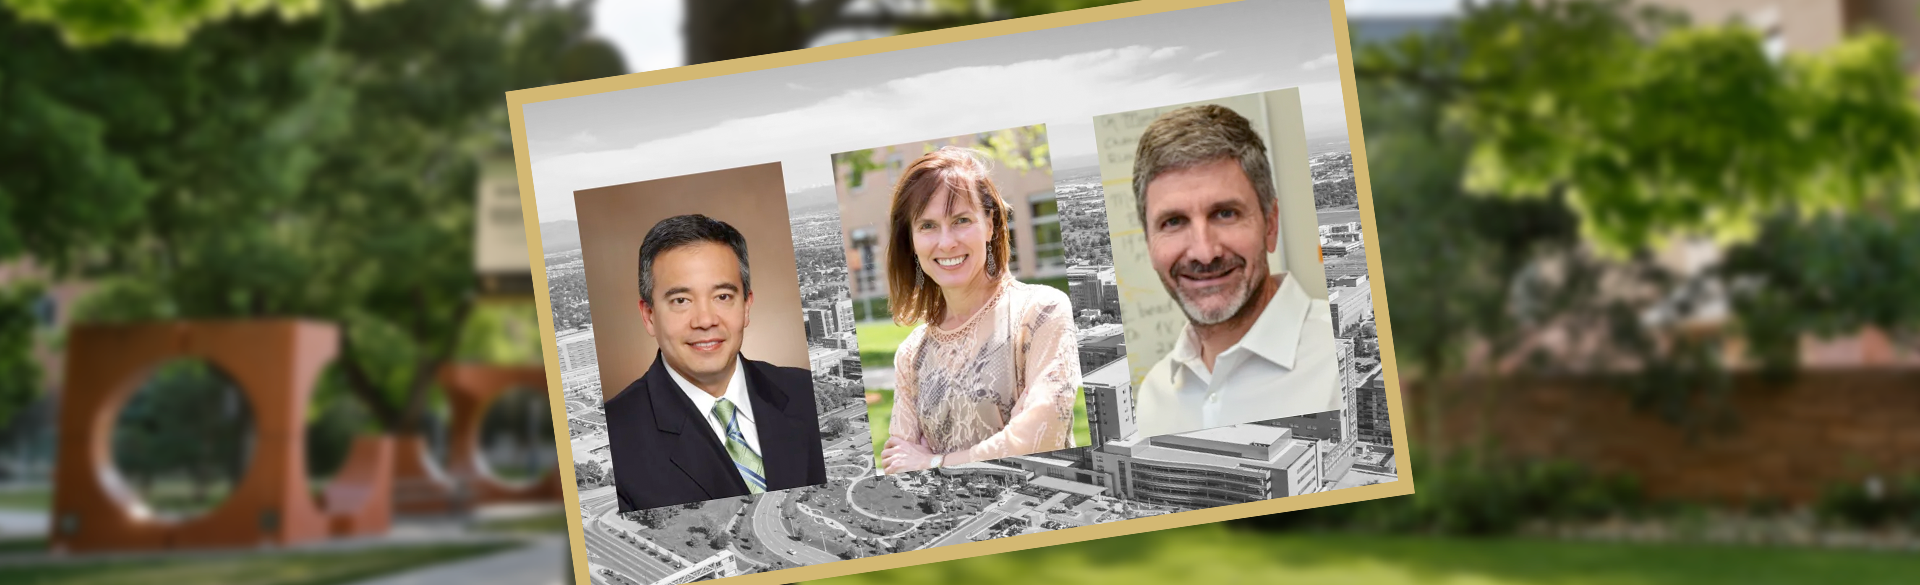 Virtual Panel Highlights How CU Cancer Center is Redefining Cancer Care in Colorado and Beyond